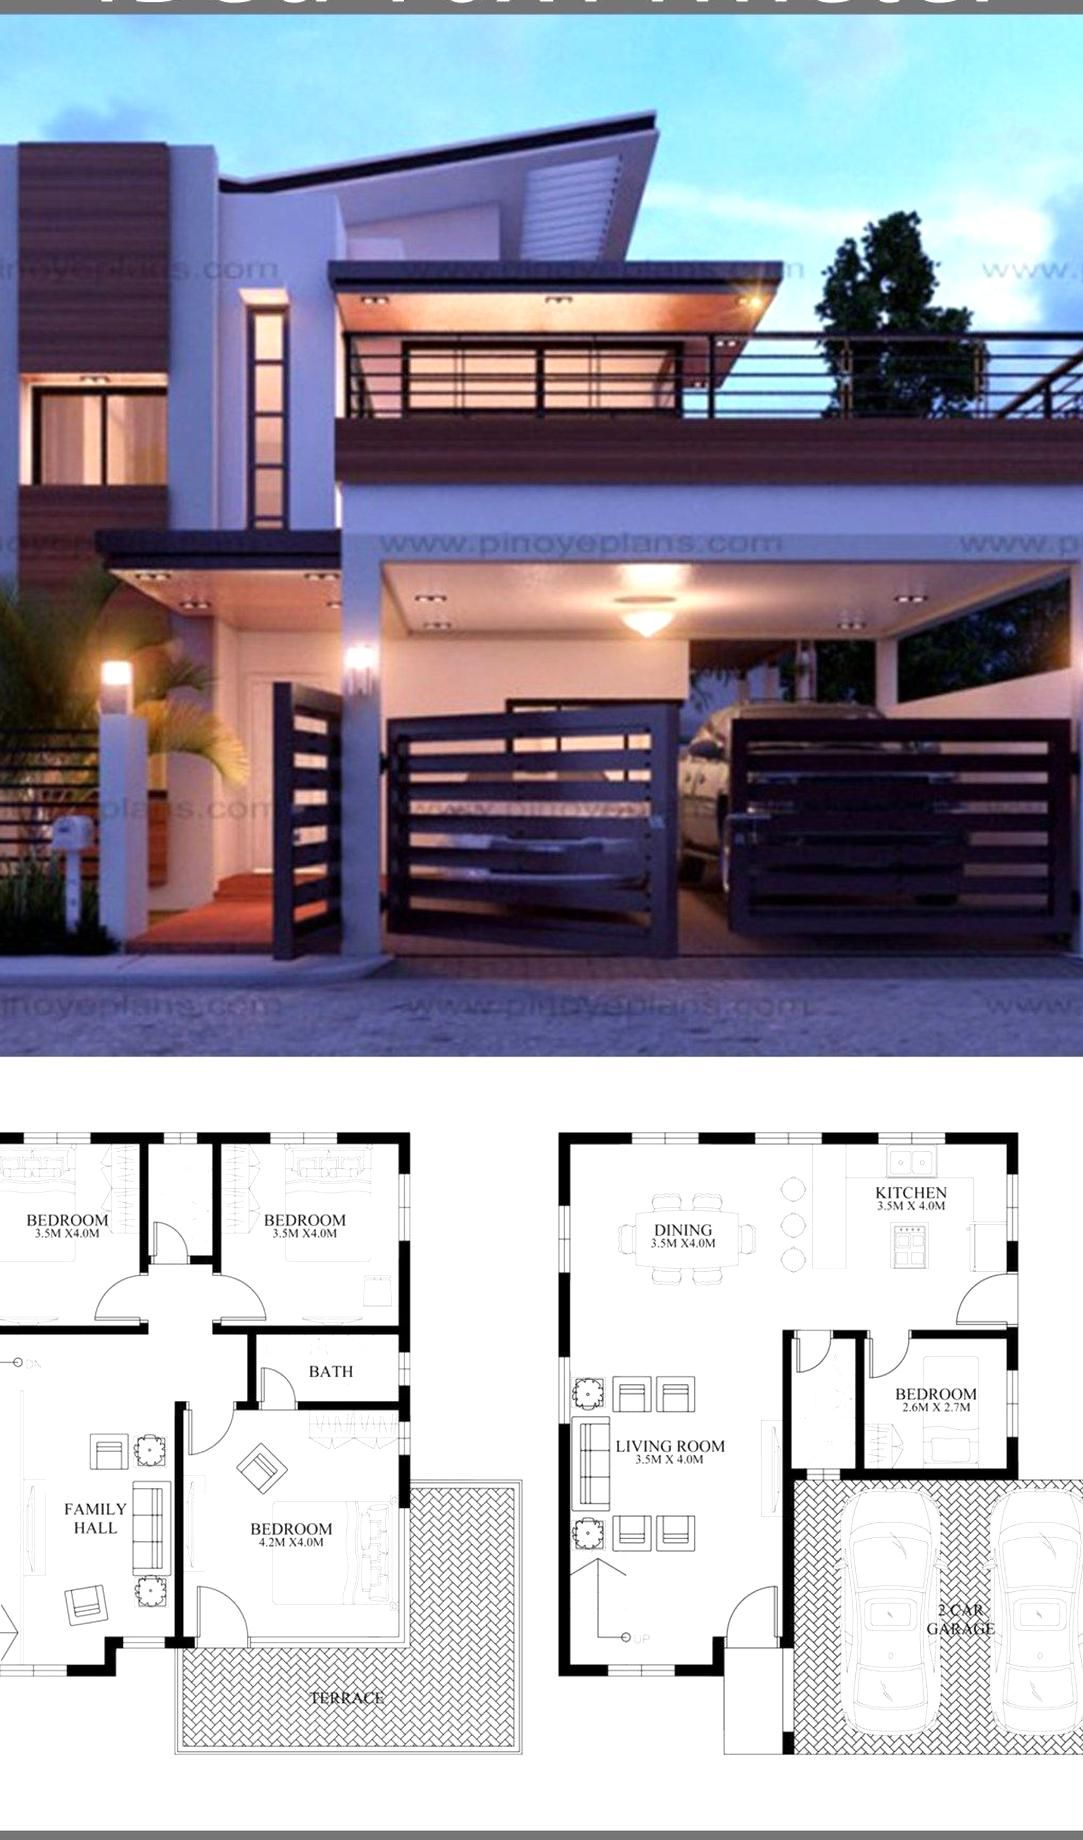 Modern Home Design 10x11m With 4 Bedrooms Home Ideas Modern Home Design 10x11m With 4 Bedr In 2020 Bungalow House Design Duplex House Design 2 Storey House Design